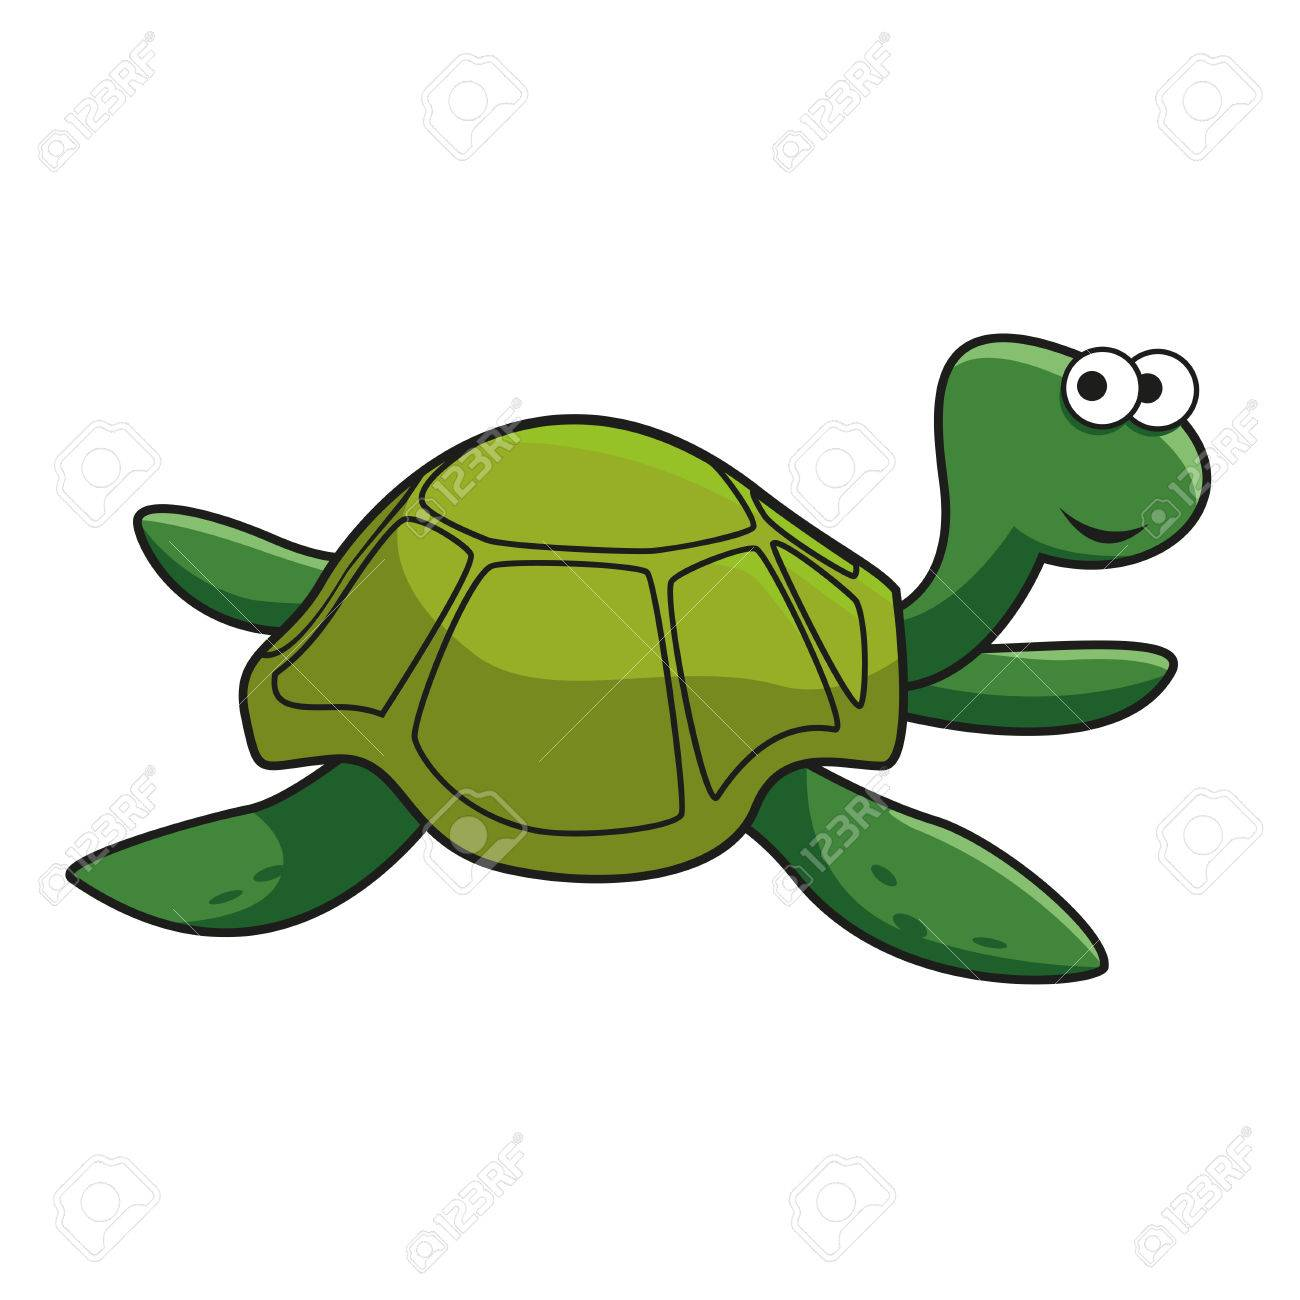 Cartoon Green Turtle Character With Smiling Face And Googly Eyes